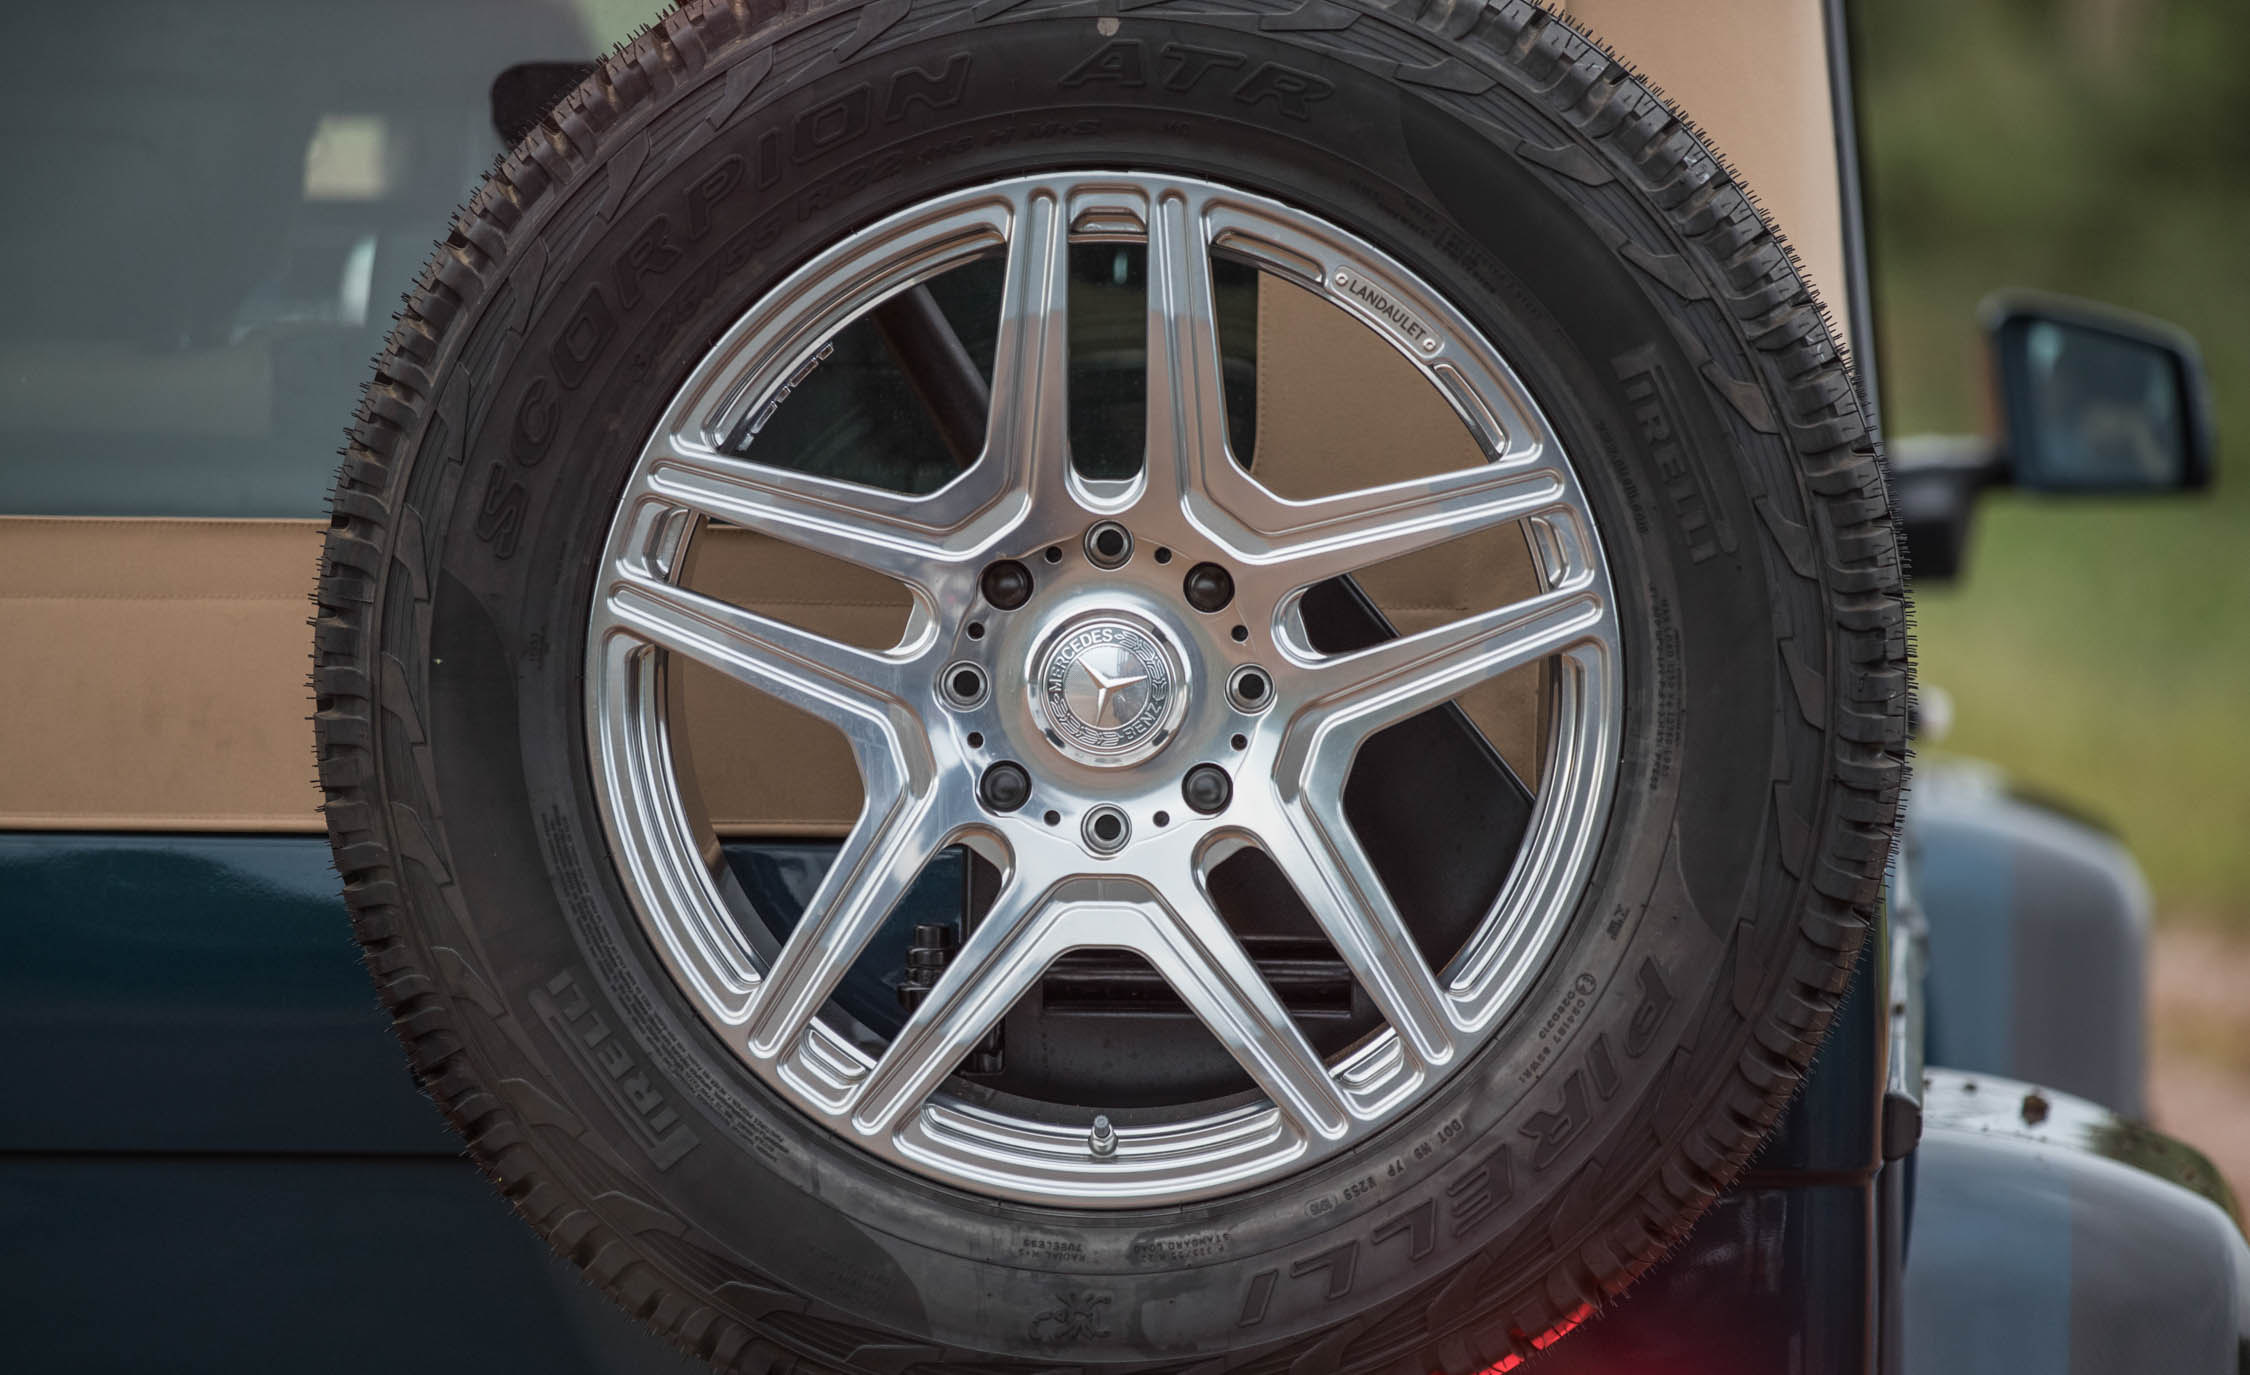 2018 Mercedes Maybach G650 Landaulet Exterior View Rear Spare Mounted Wheel (Photo 14 of 52)